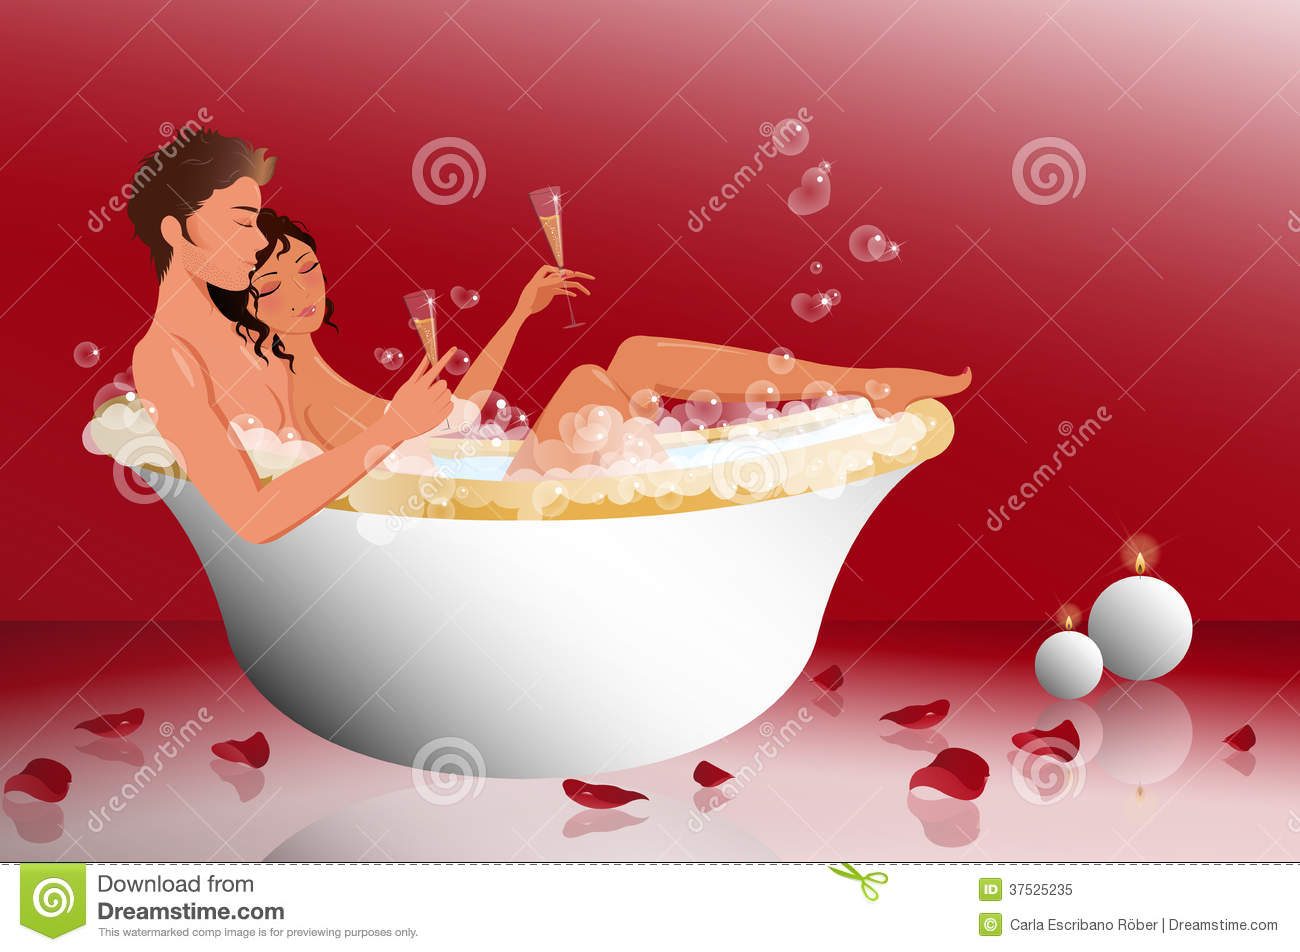 romantic couple in the bathtub stock vector illustration of bubbles valentines 37525235. Black Bedroom Furniture Sets. Home Design Ideas